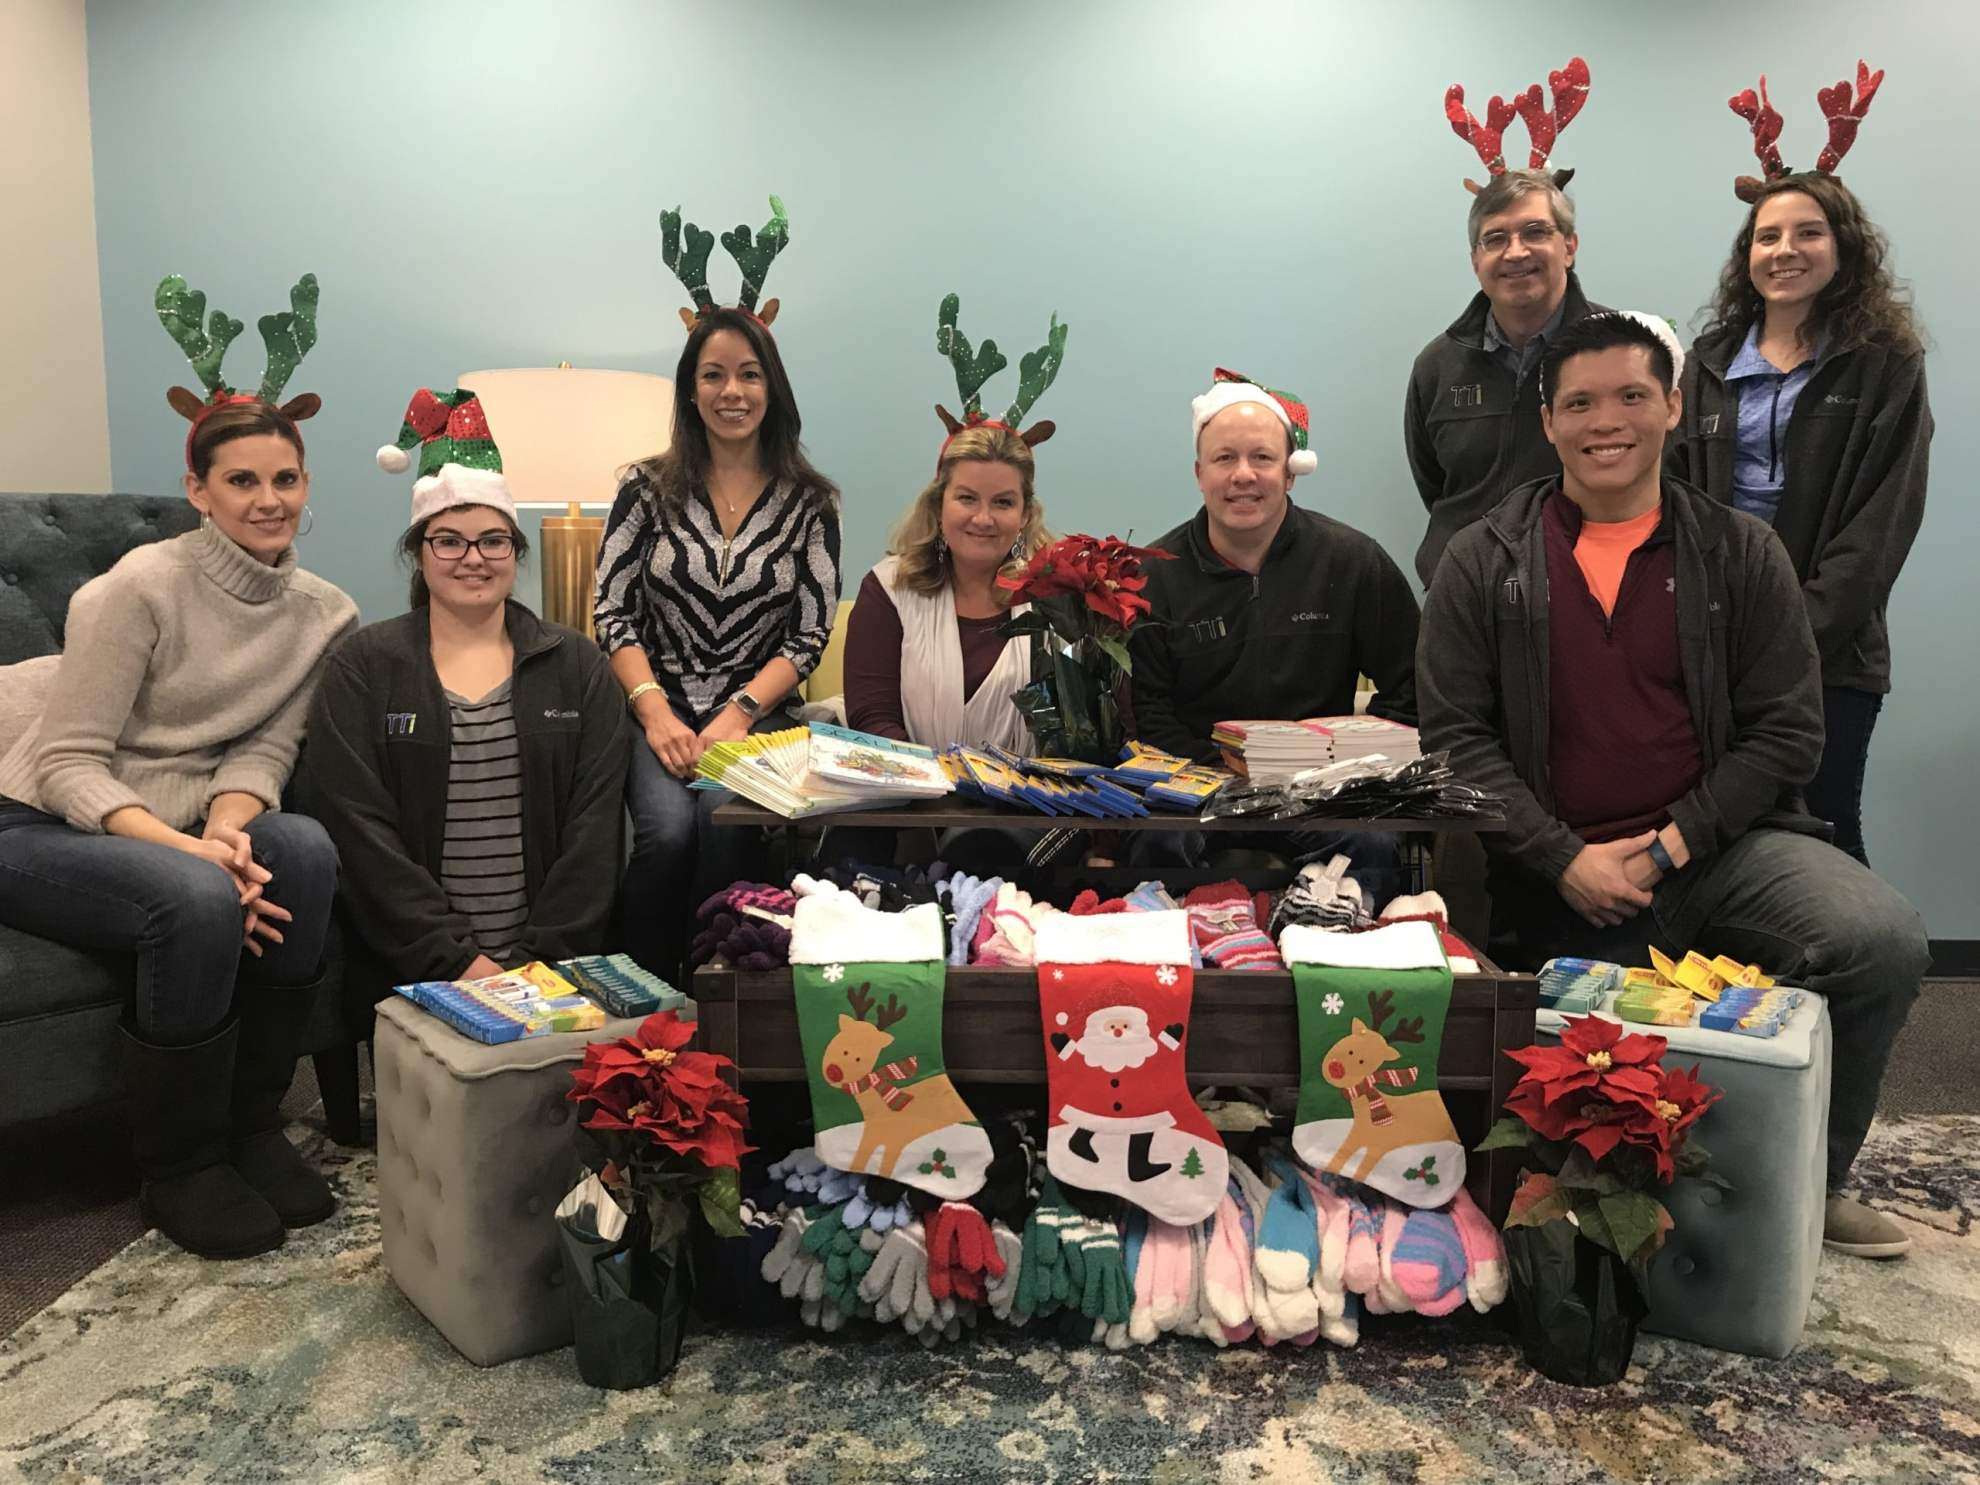 TTi's team smiling with a collection of gifts collected for NESAP including Christmas stockings, mittens, books, and other items. The team are wearing Christmas hats & reindeer antlers.